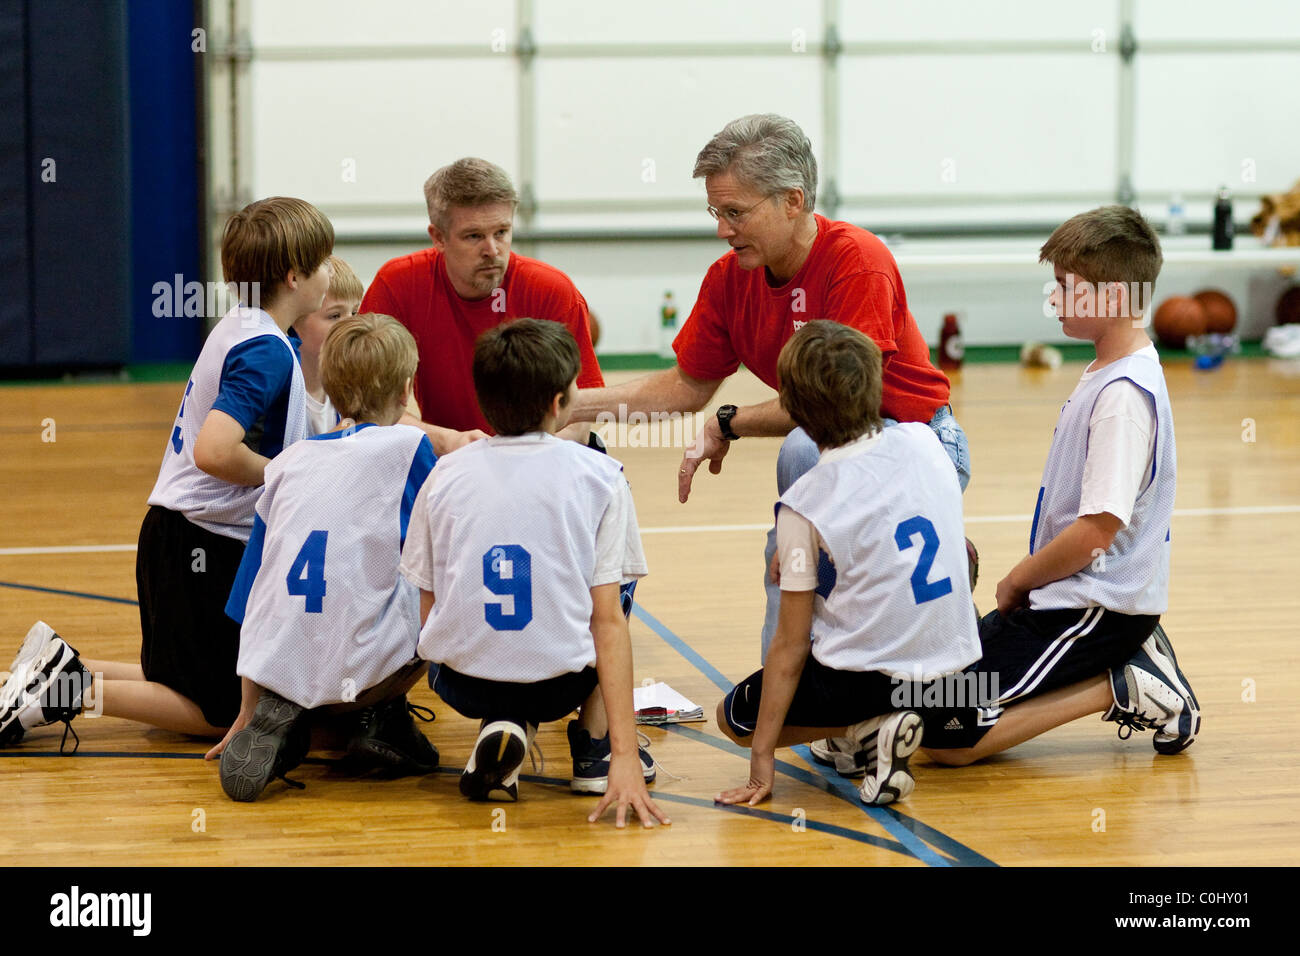 Volunteer coaches instruct 10-year-old boys during practice for youth-league basketball team at gym in Austin Texas - Stock Image